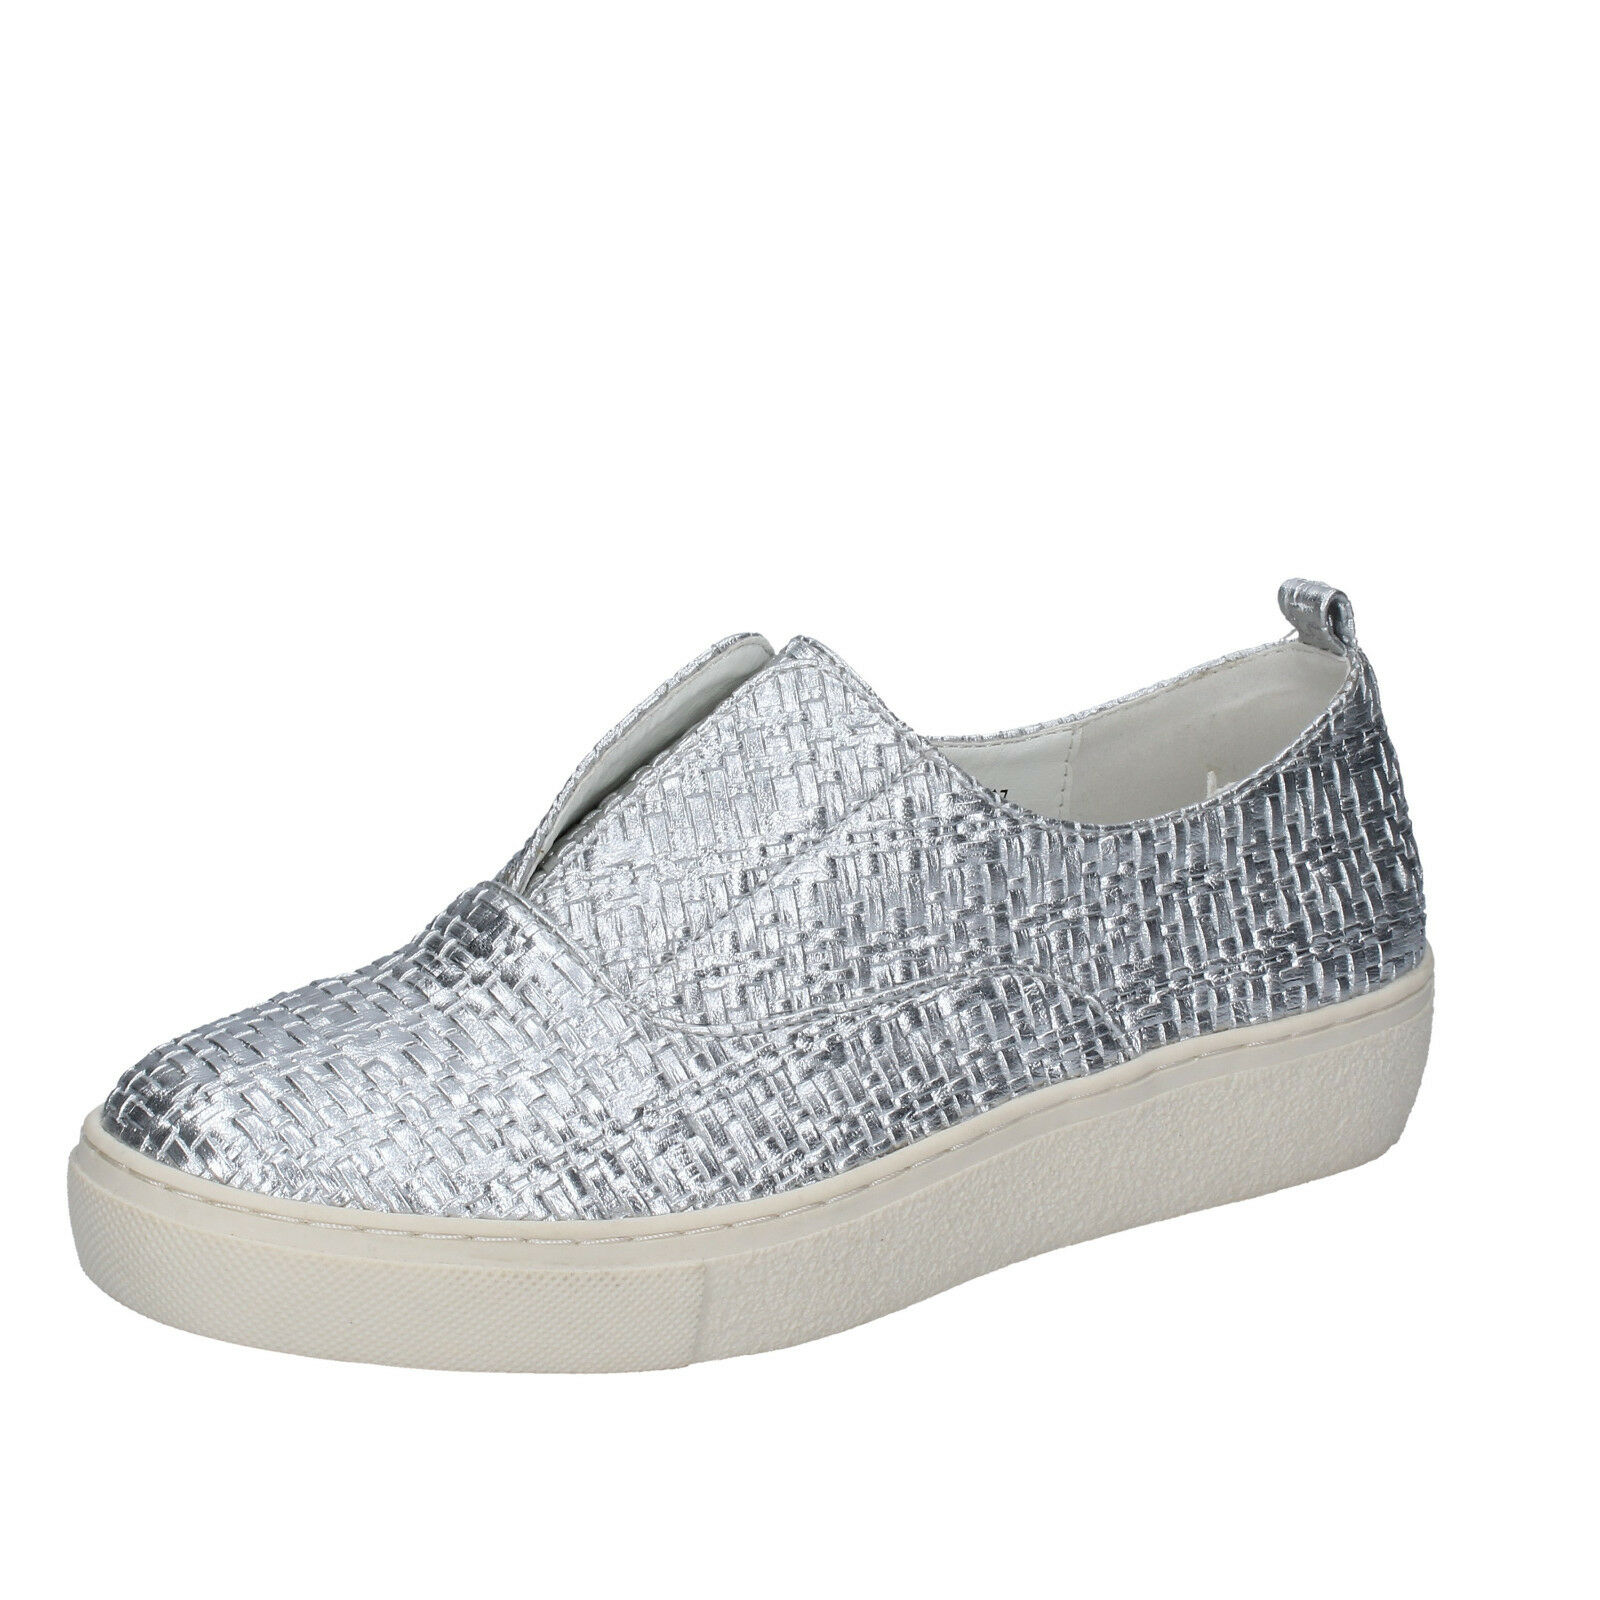 Zapatos para mujer Francesco Milano 8 (EU 41) Slip on on on plata Leather BS79-41  venta al por mayor barato